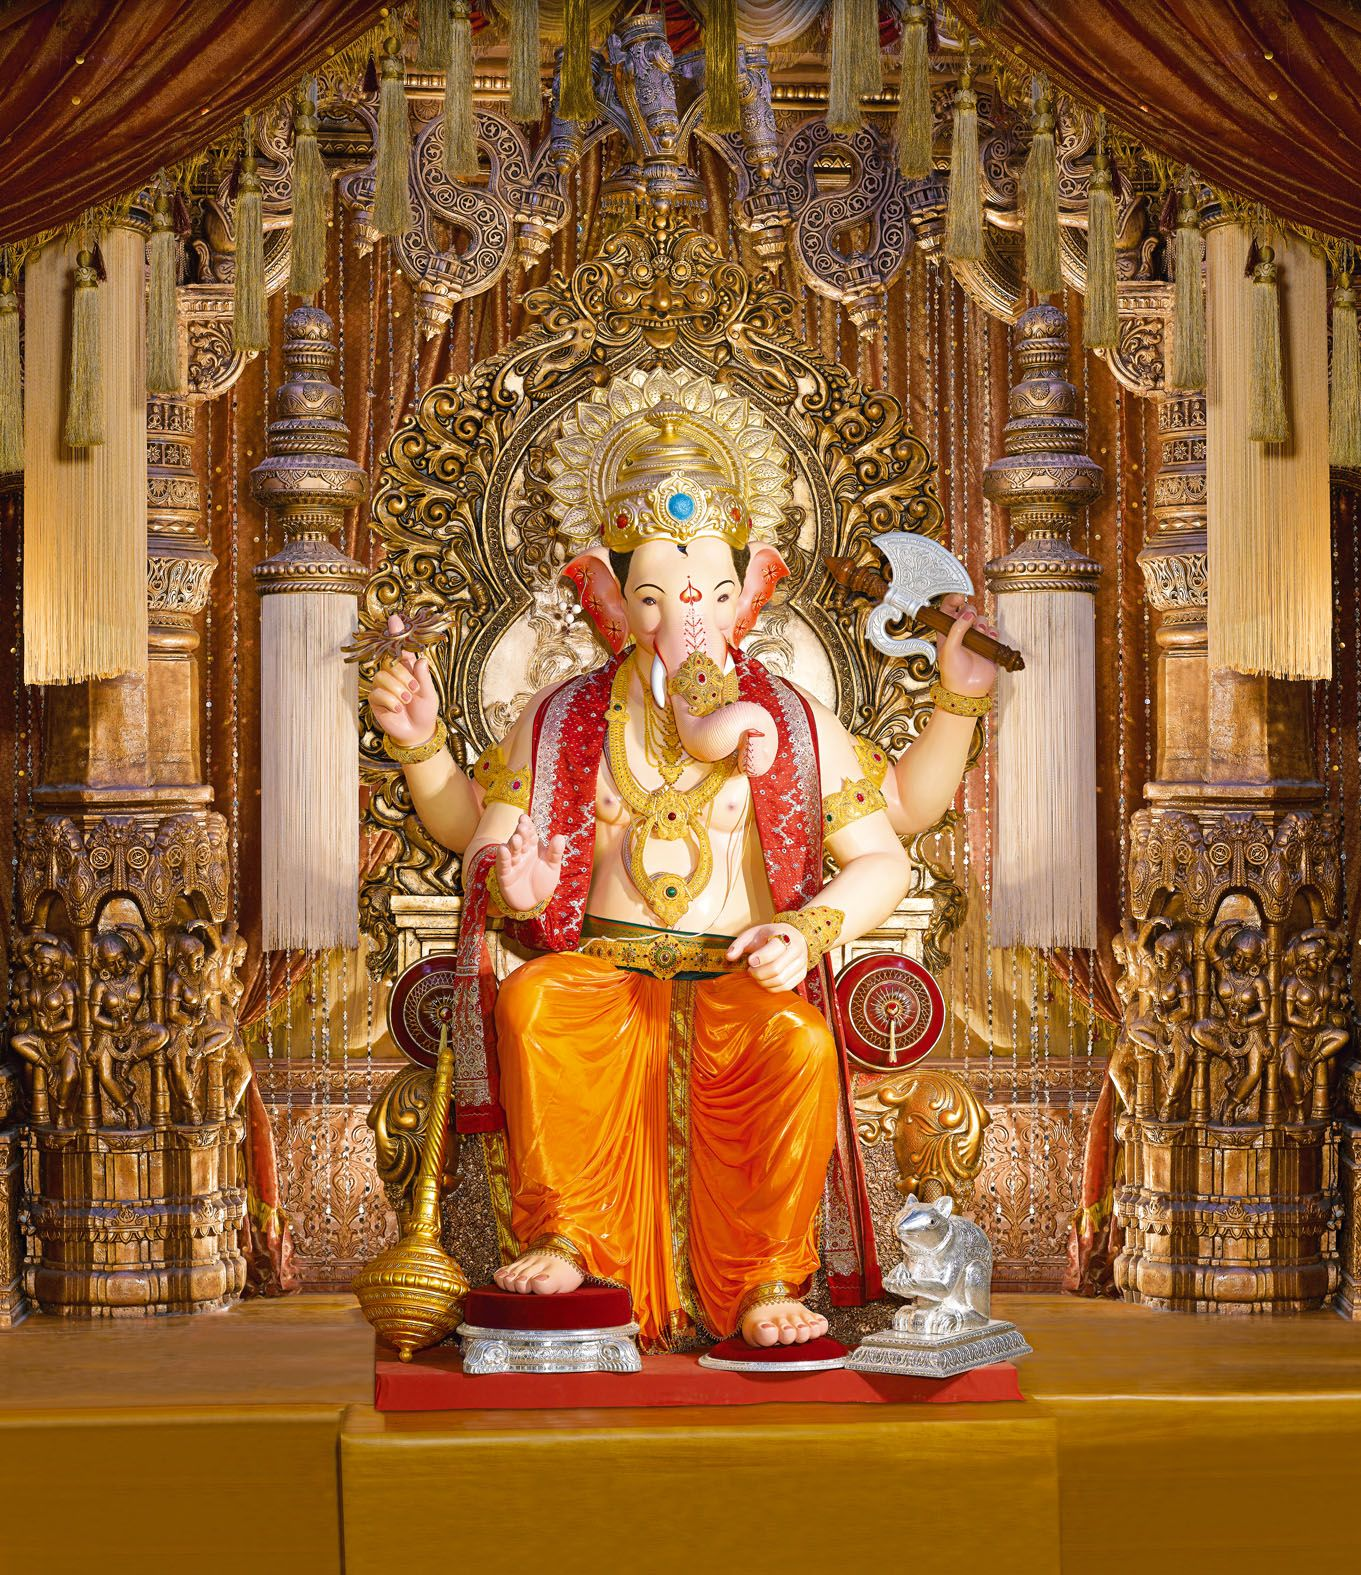 Shri Ganesh Hd Wallpaper: Ganesha Fine New Full HD Wallpapers